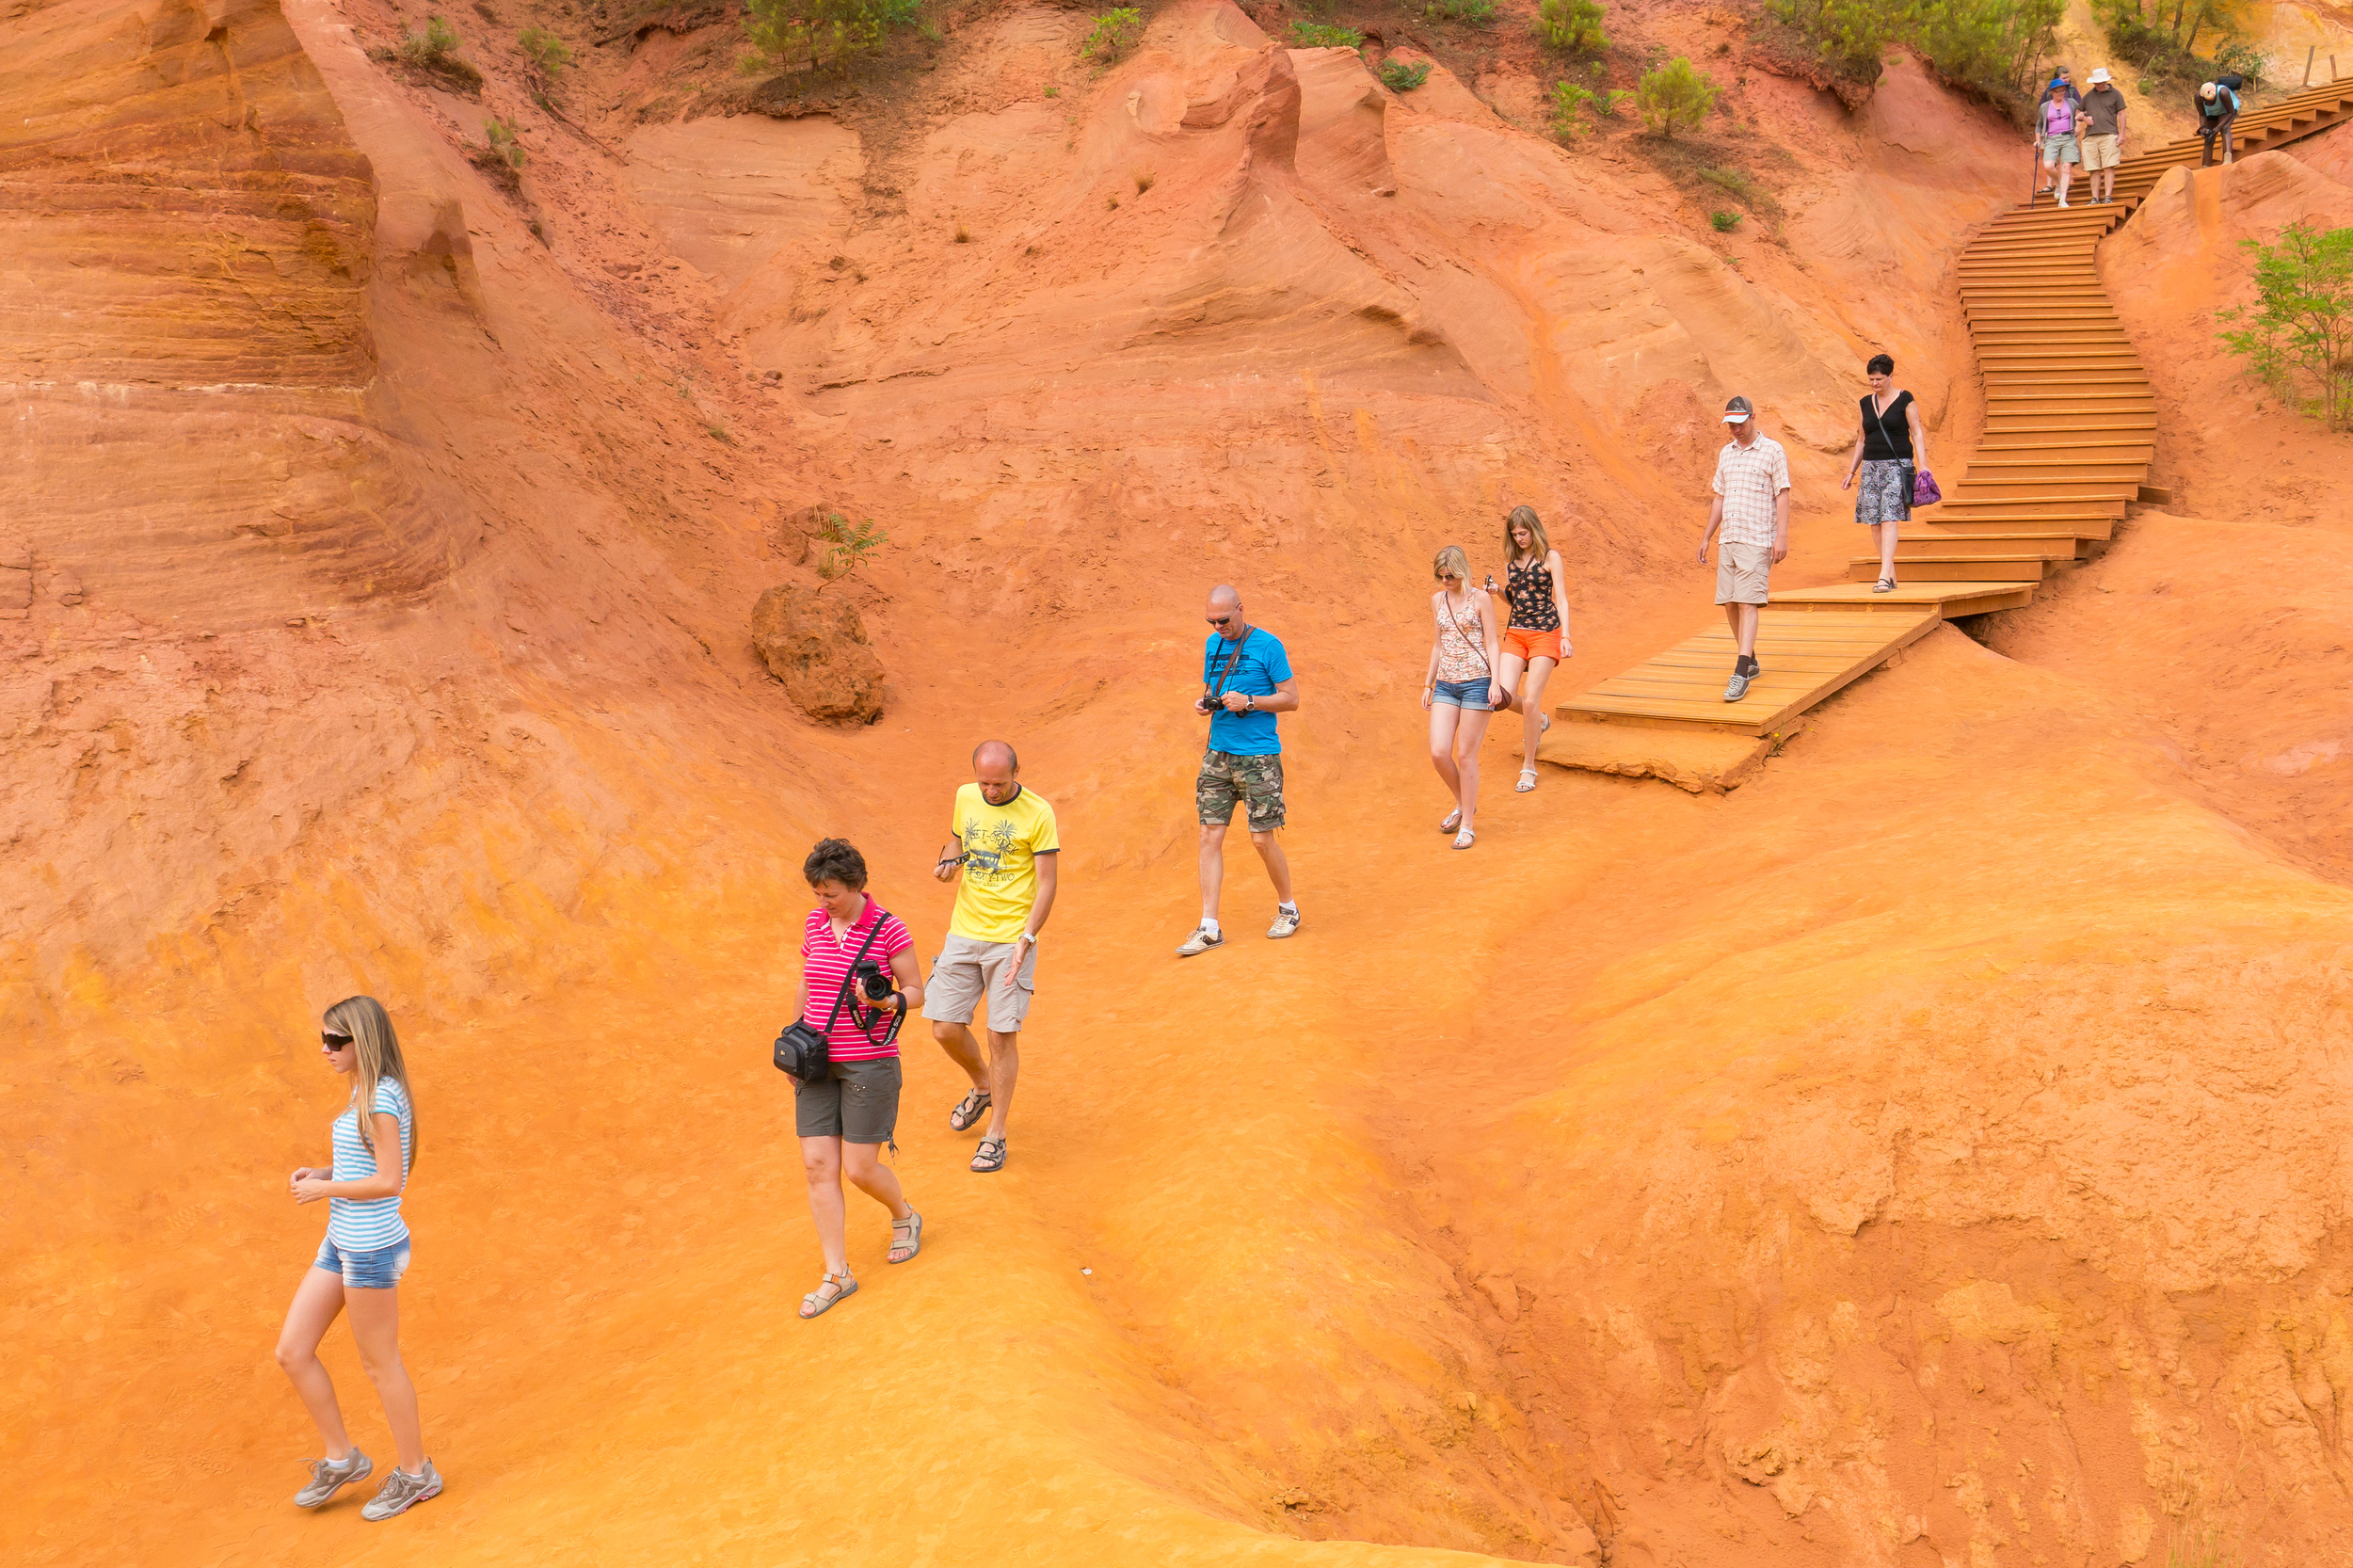 Everyone walks in Roussillon (2013)